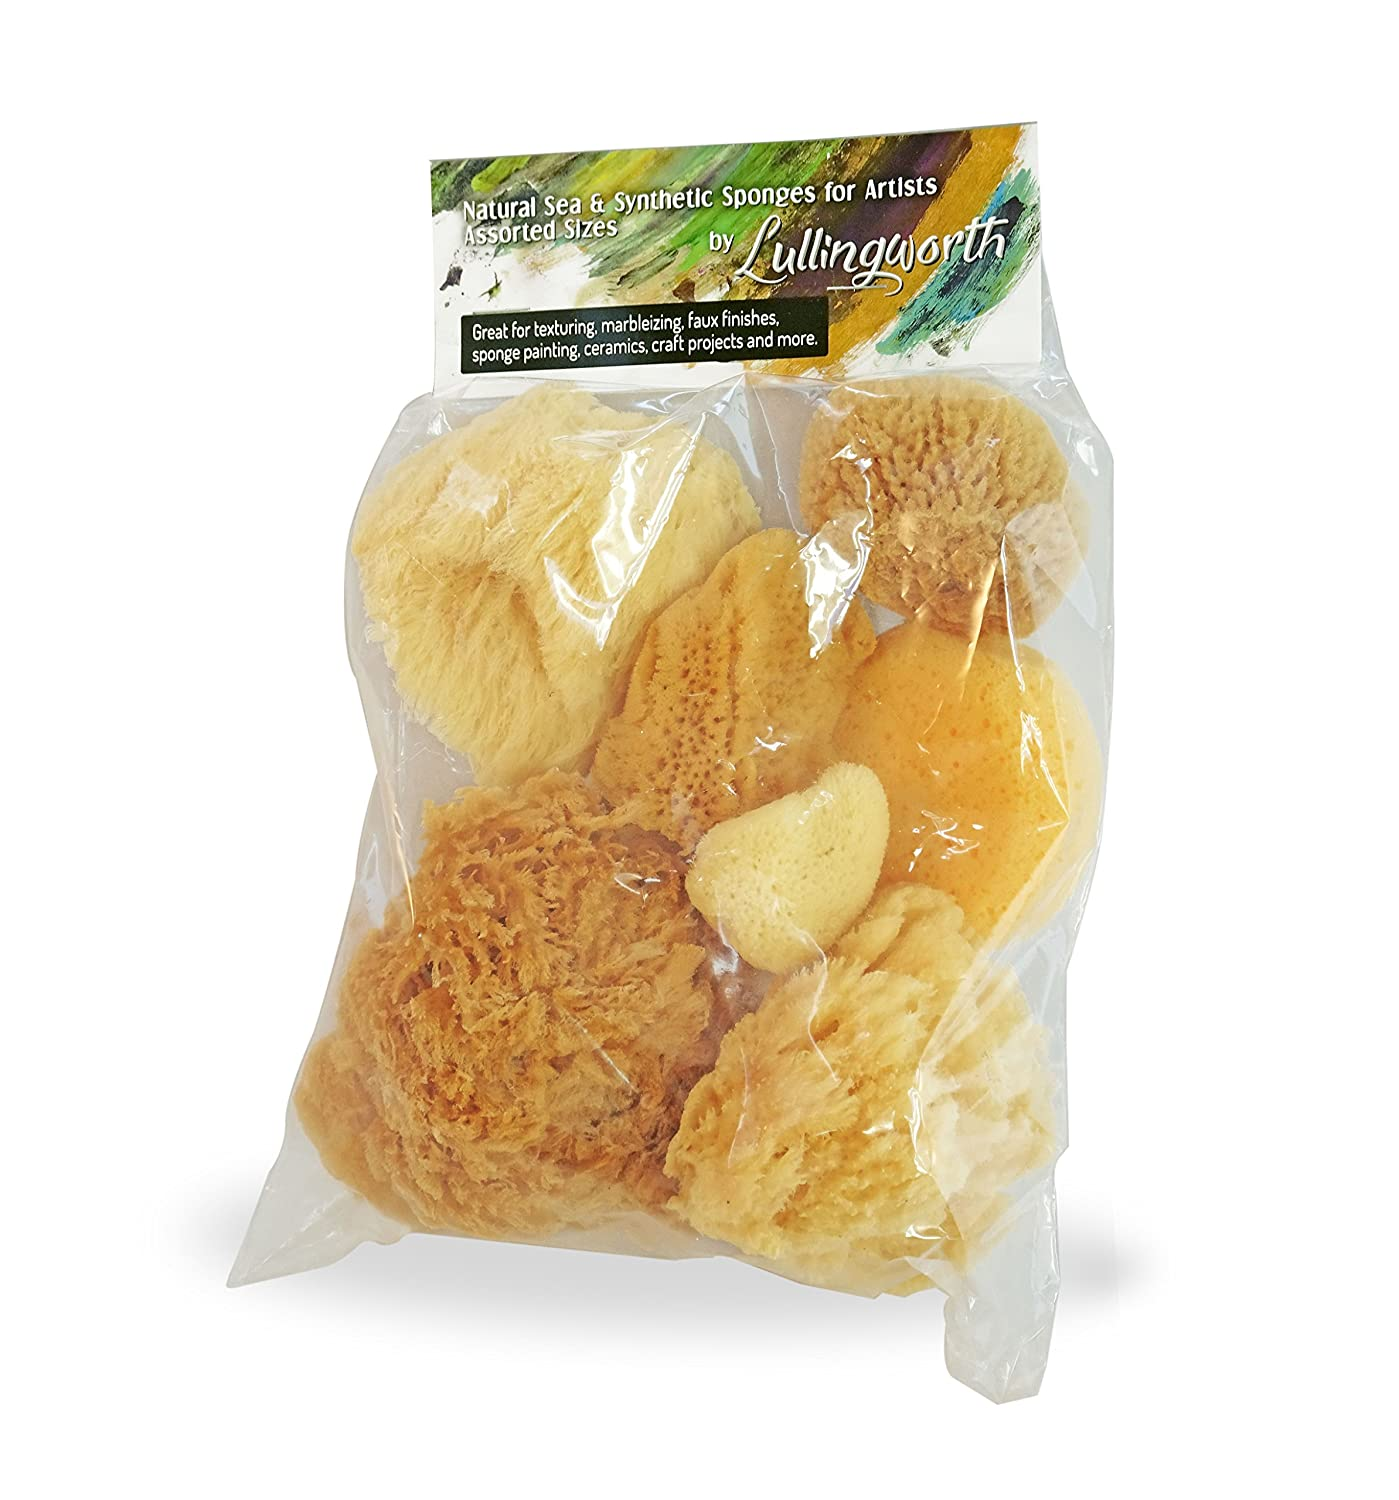 Natural Sea & Synthetic Sponges for Artists Assorted Sizes 7pc Value Pack: Great for Art, Painting, Ceramics, Crafts, Clay Pottery & More by Lullingworth 4336955192